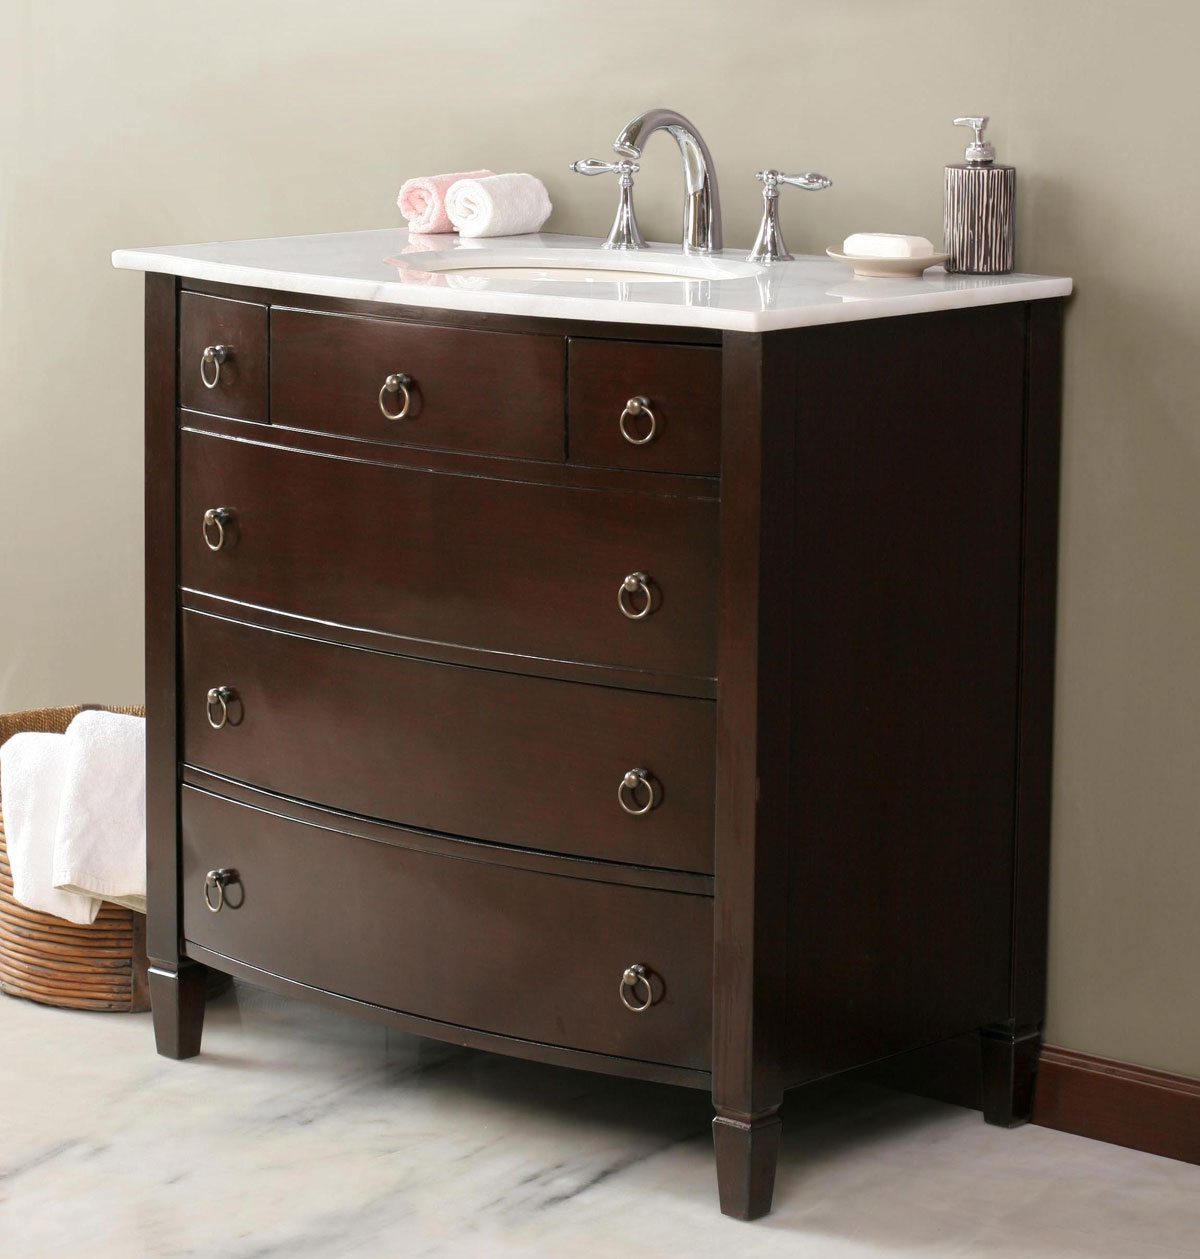 Small Bath Vanity With Drawers